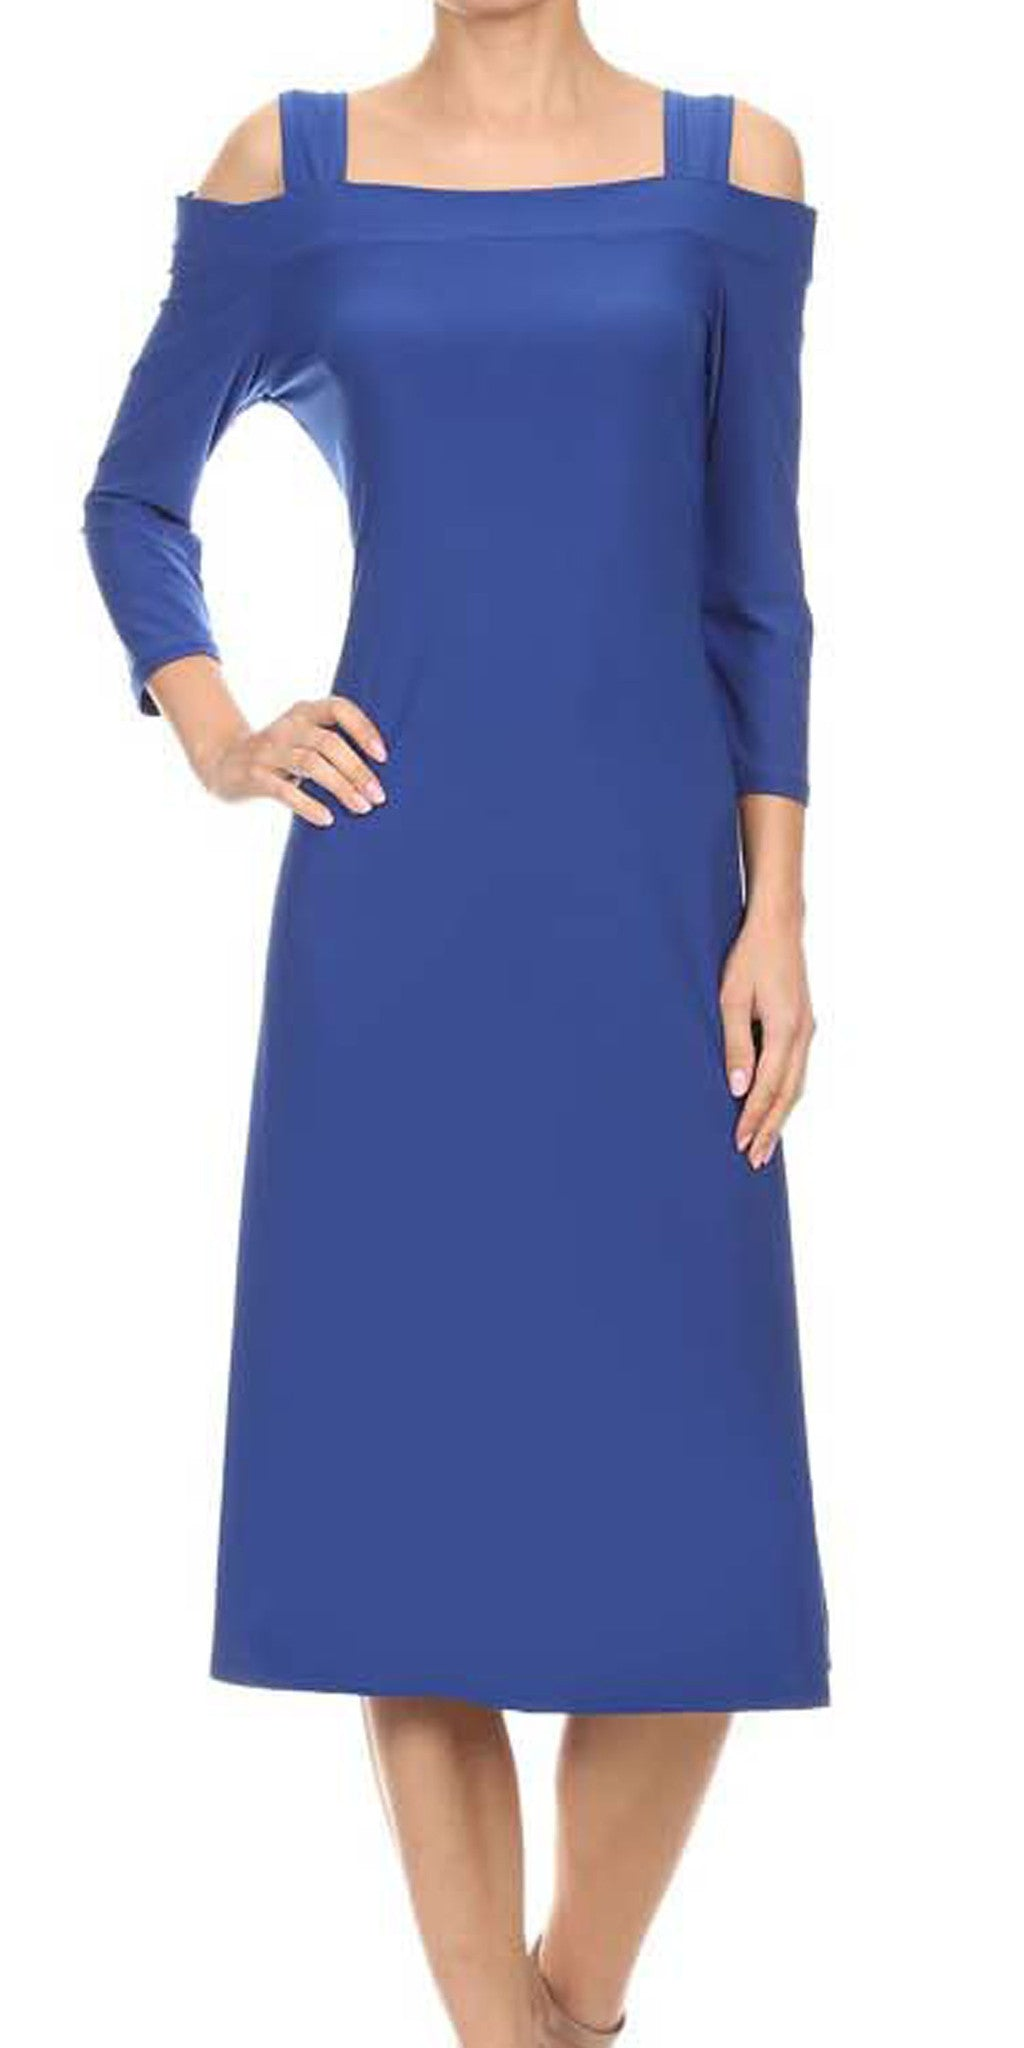 Avital Cold Shoulder Stretch Midi Dress (Royal Blue Solid),Dress,Avital - Discount Divas